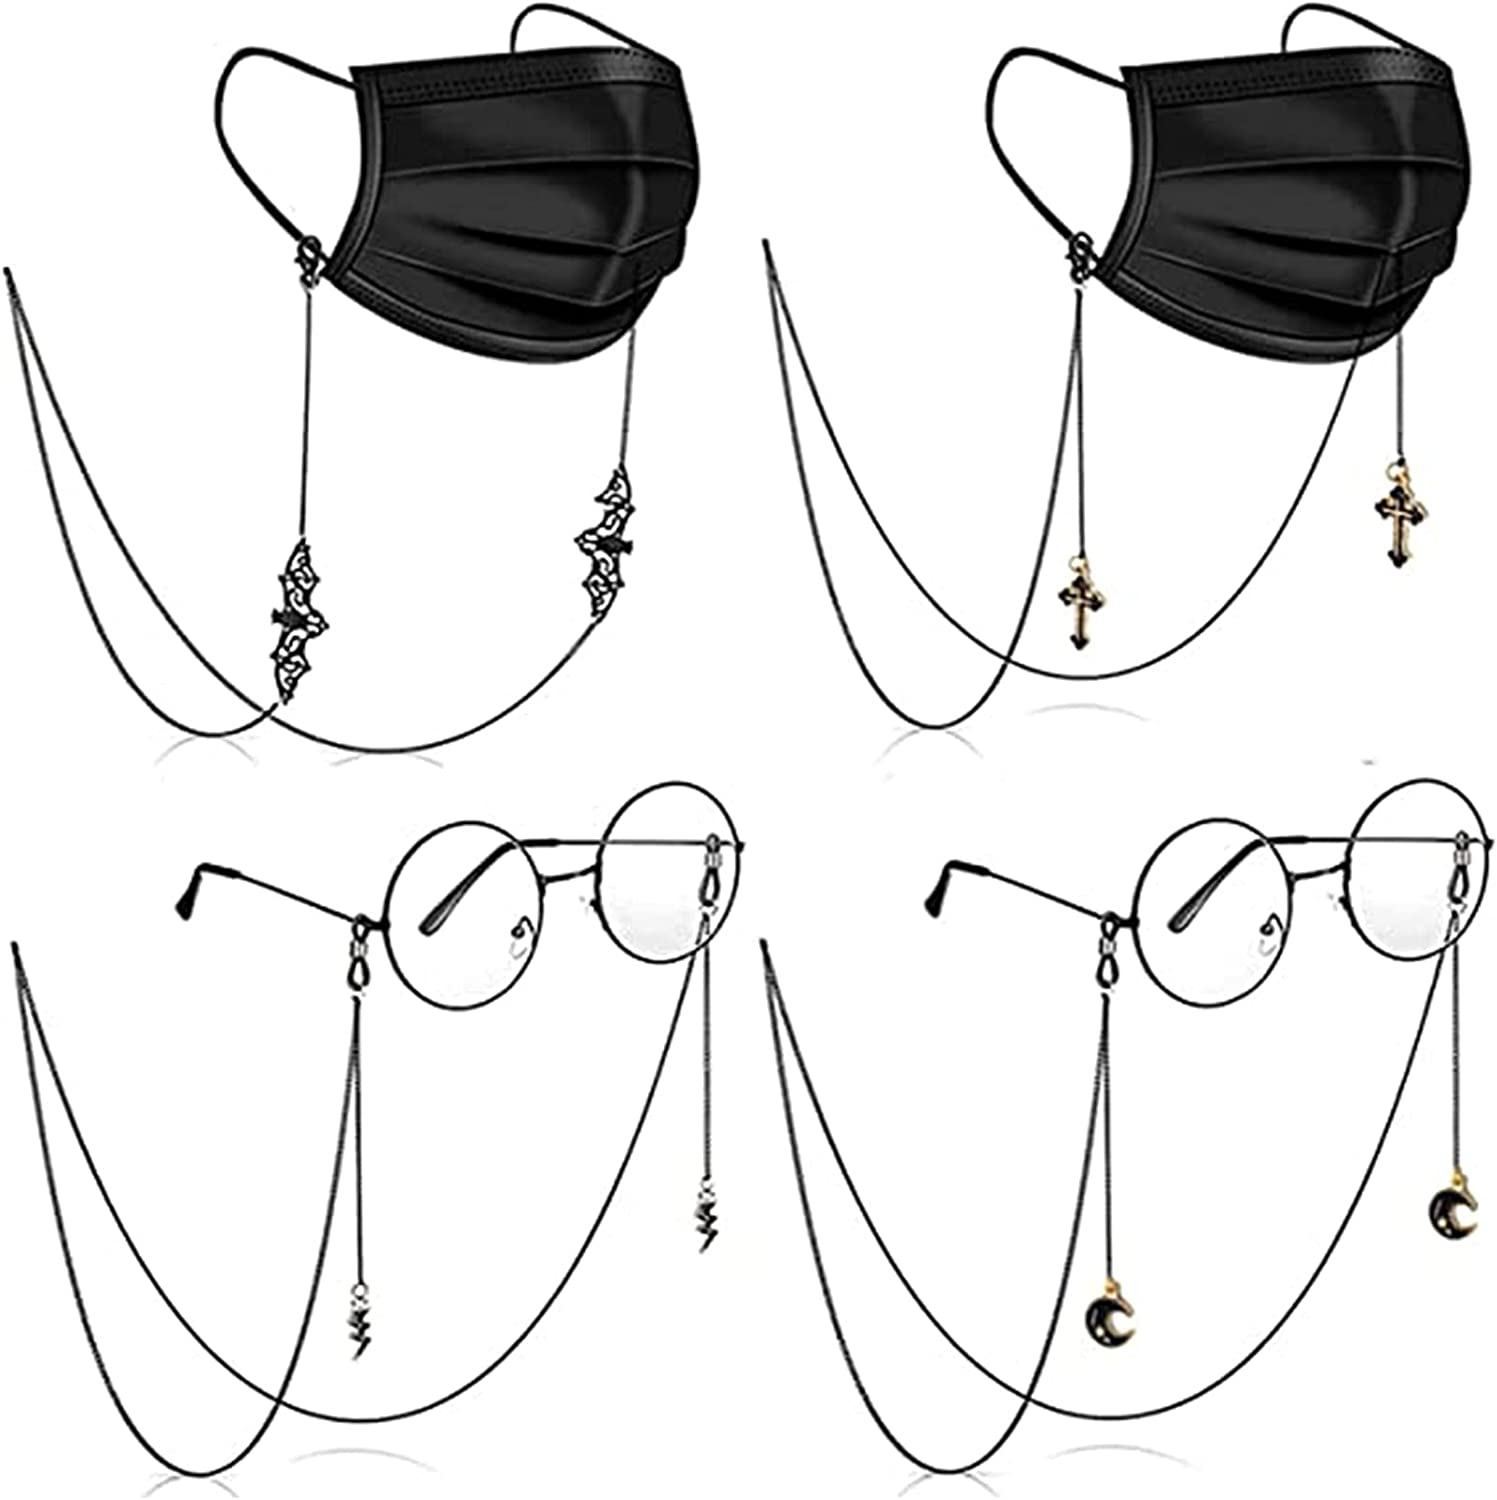 Face Mask Chains (4 Pack) - Mask Holder Chain for Women and Kids - Black Glasses Chains Sunglass Eyeglass Retainer Strap Holder